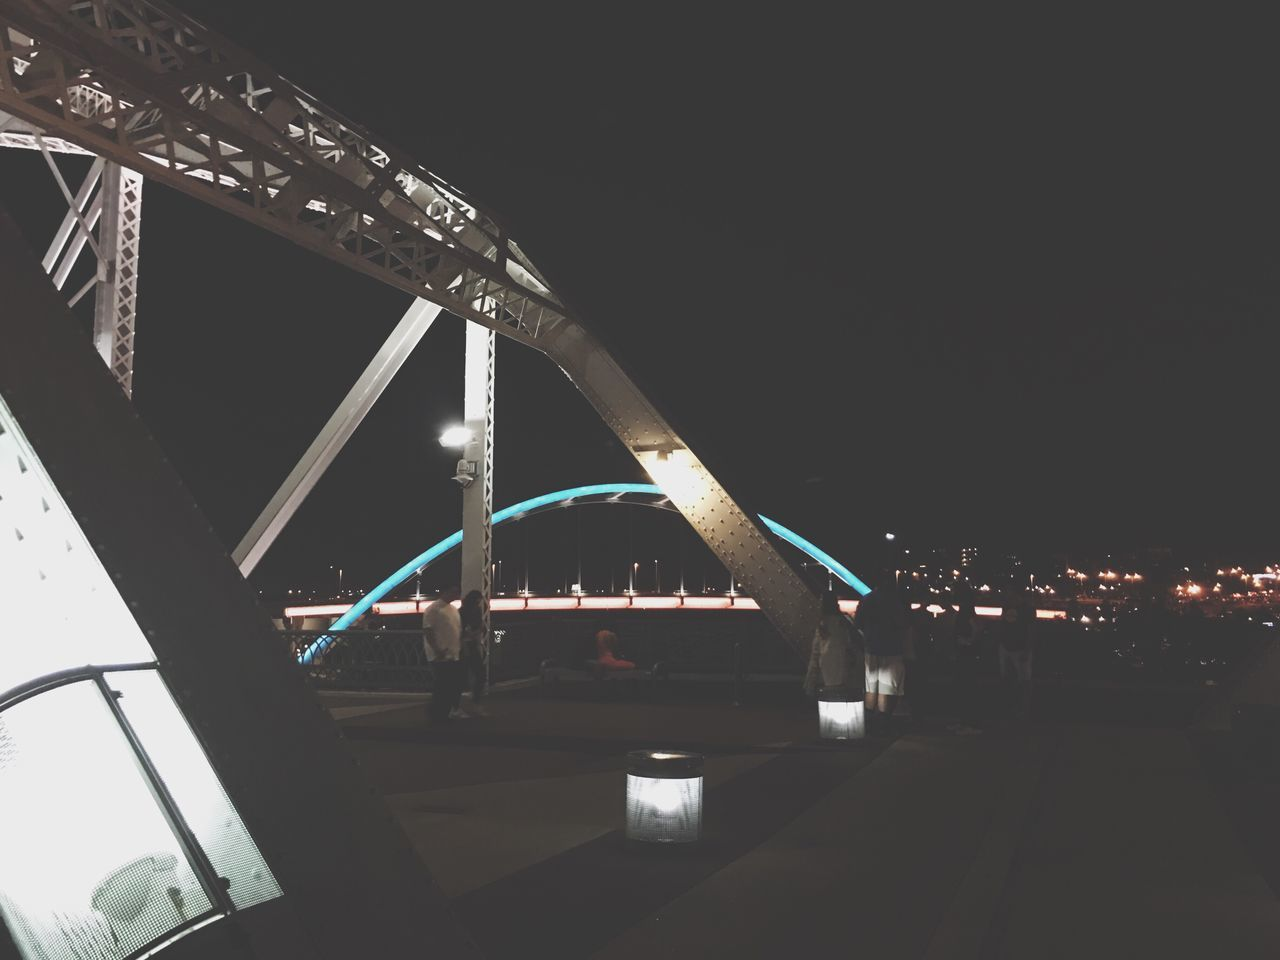 Architecture Built Structure Night Illuminated Transportation Bridge - Man Made Structure Travel Destinations City Connection Building Exterior Outdoors Sky Water